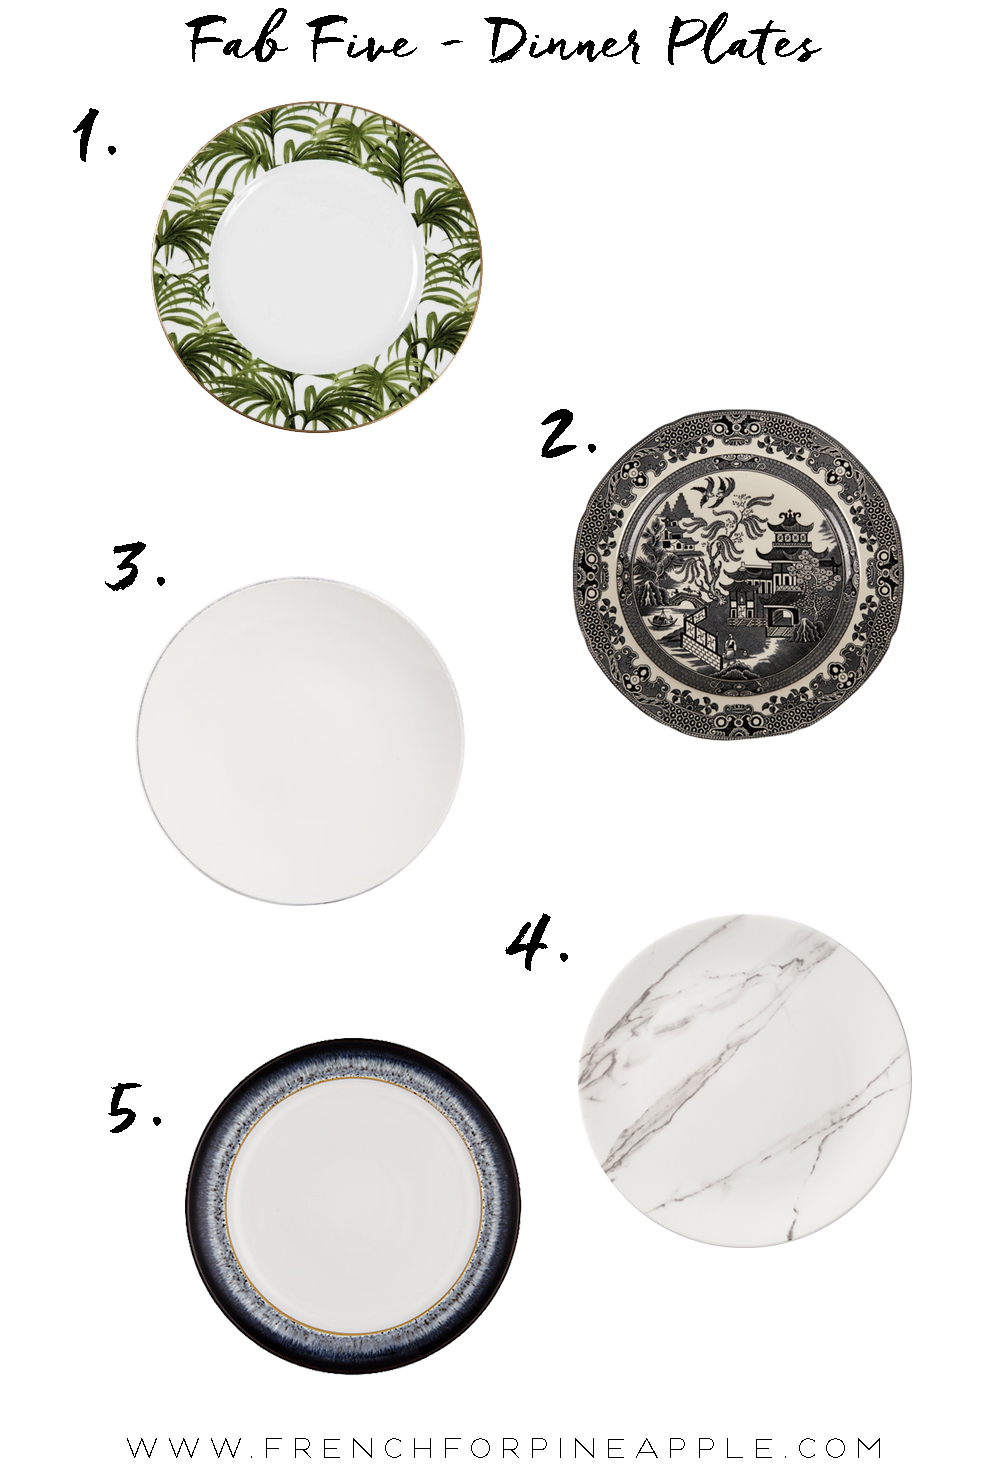 Palm, Chinoiserie, Earthenware, Marble and Glazed Dinner Plates. French For Pineapple Blog